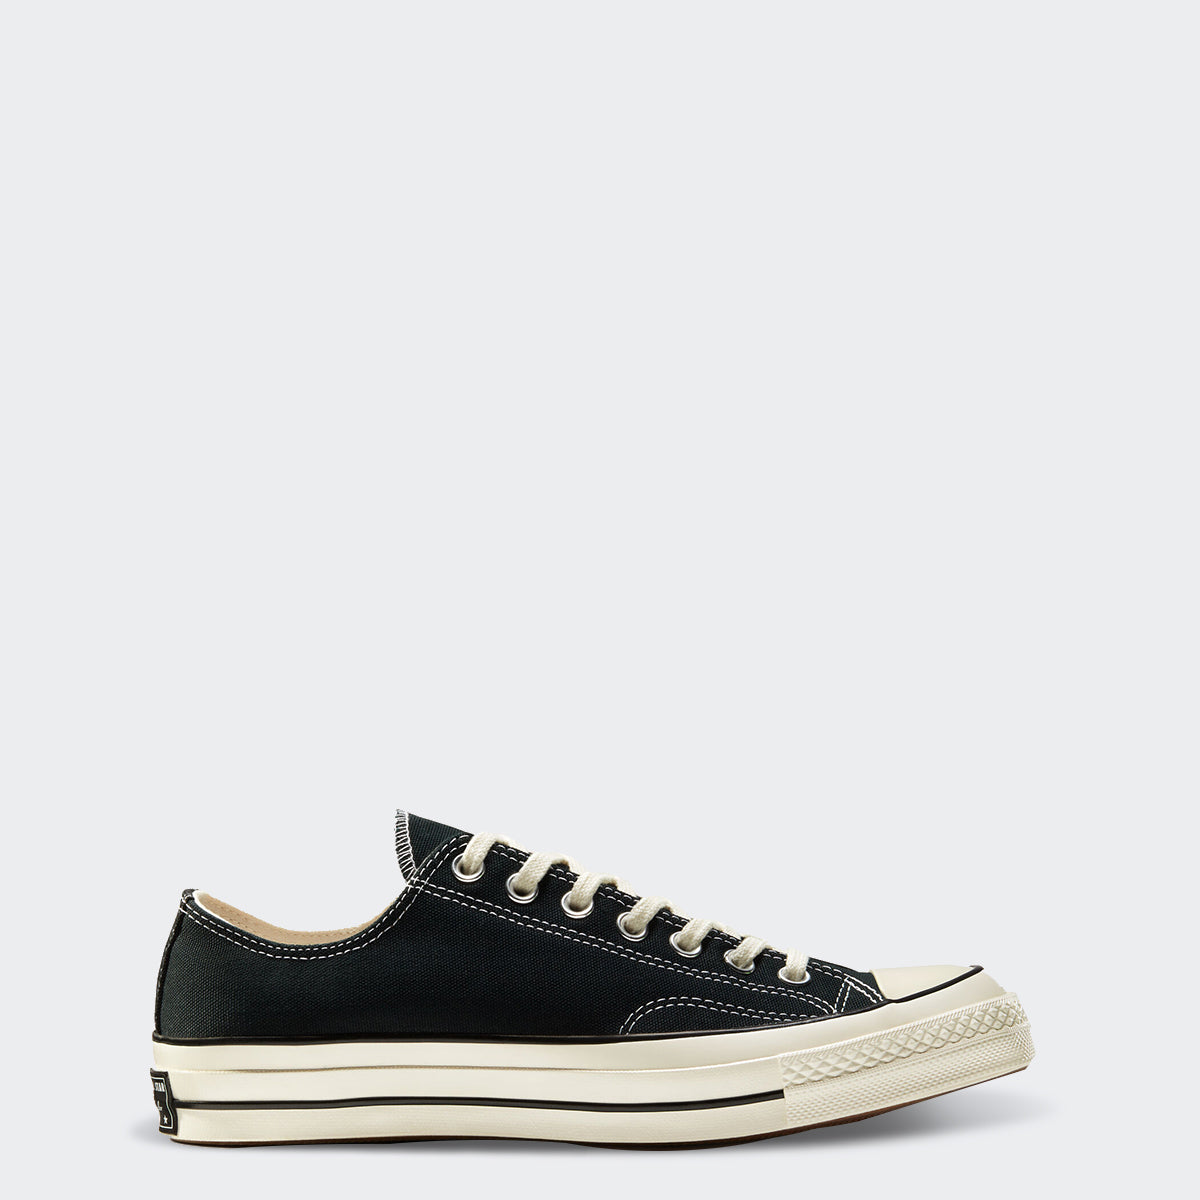 Converse Chuck 70 Classic Low Top Shoes